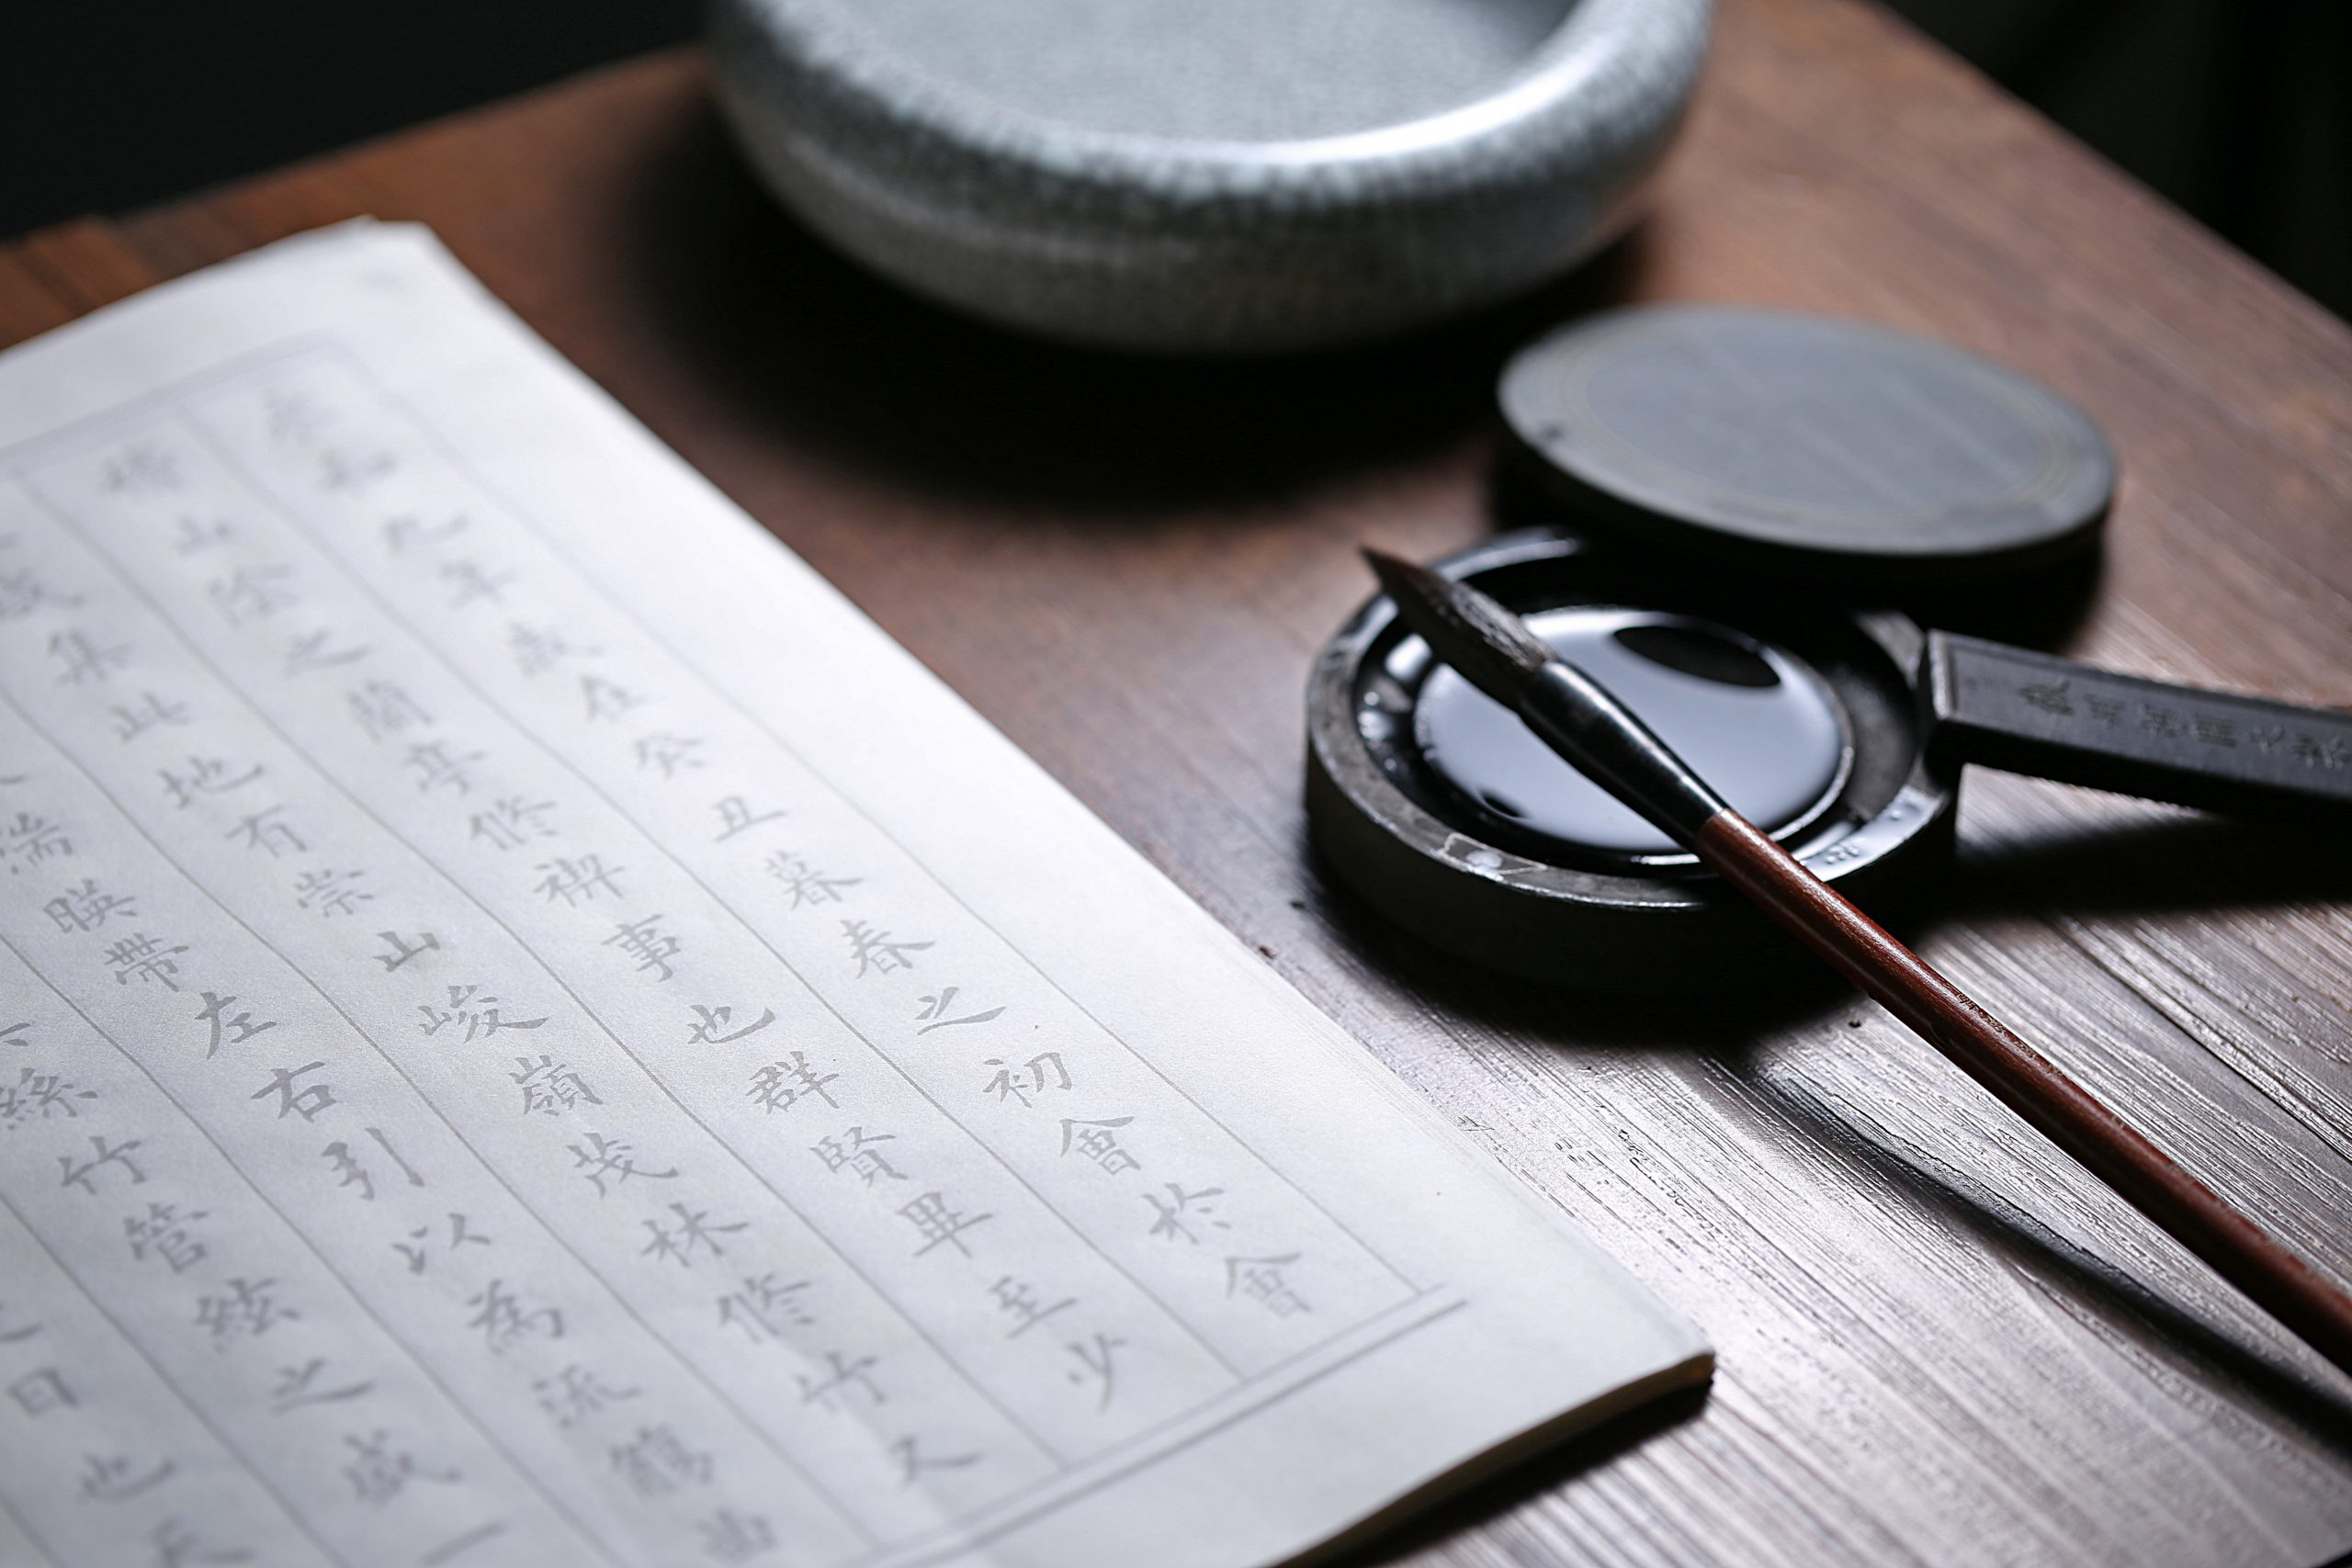 Simplified Chinese and Traditional Chinese